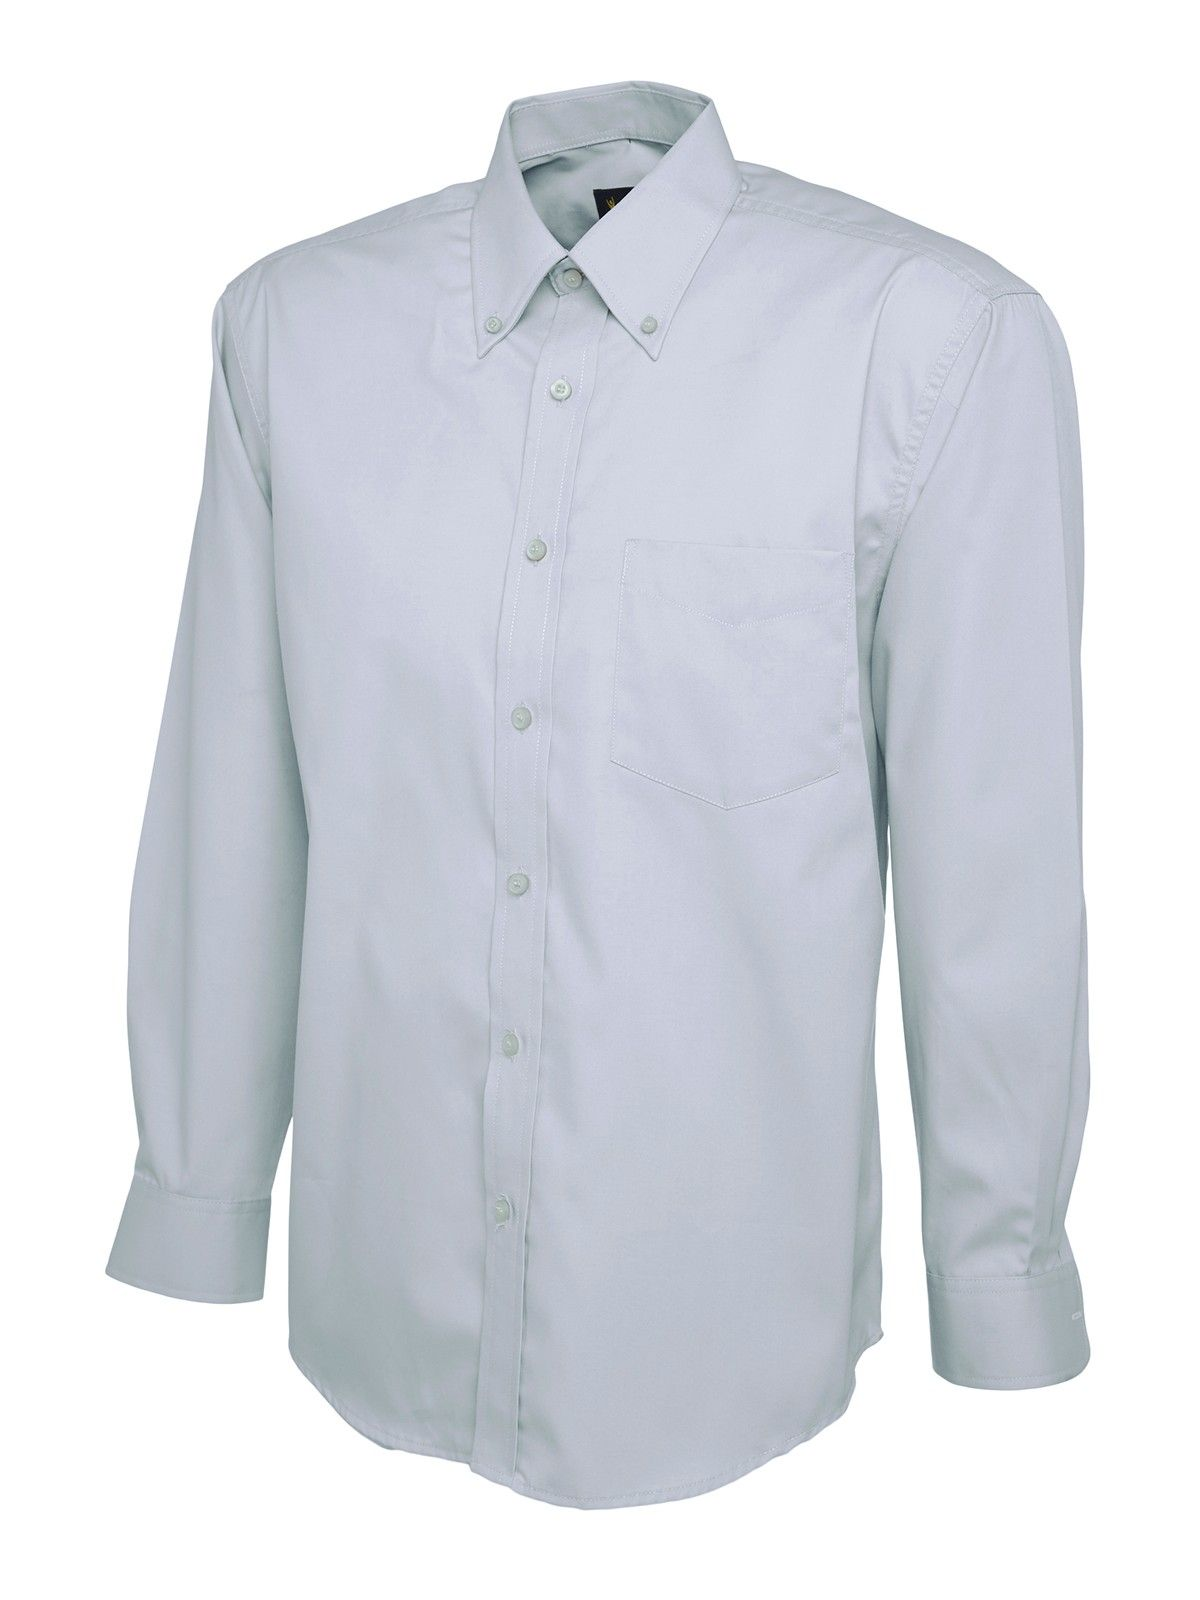 embroidered mens oxford long sleeve shirt